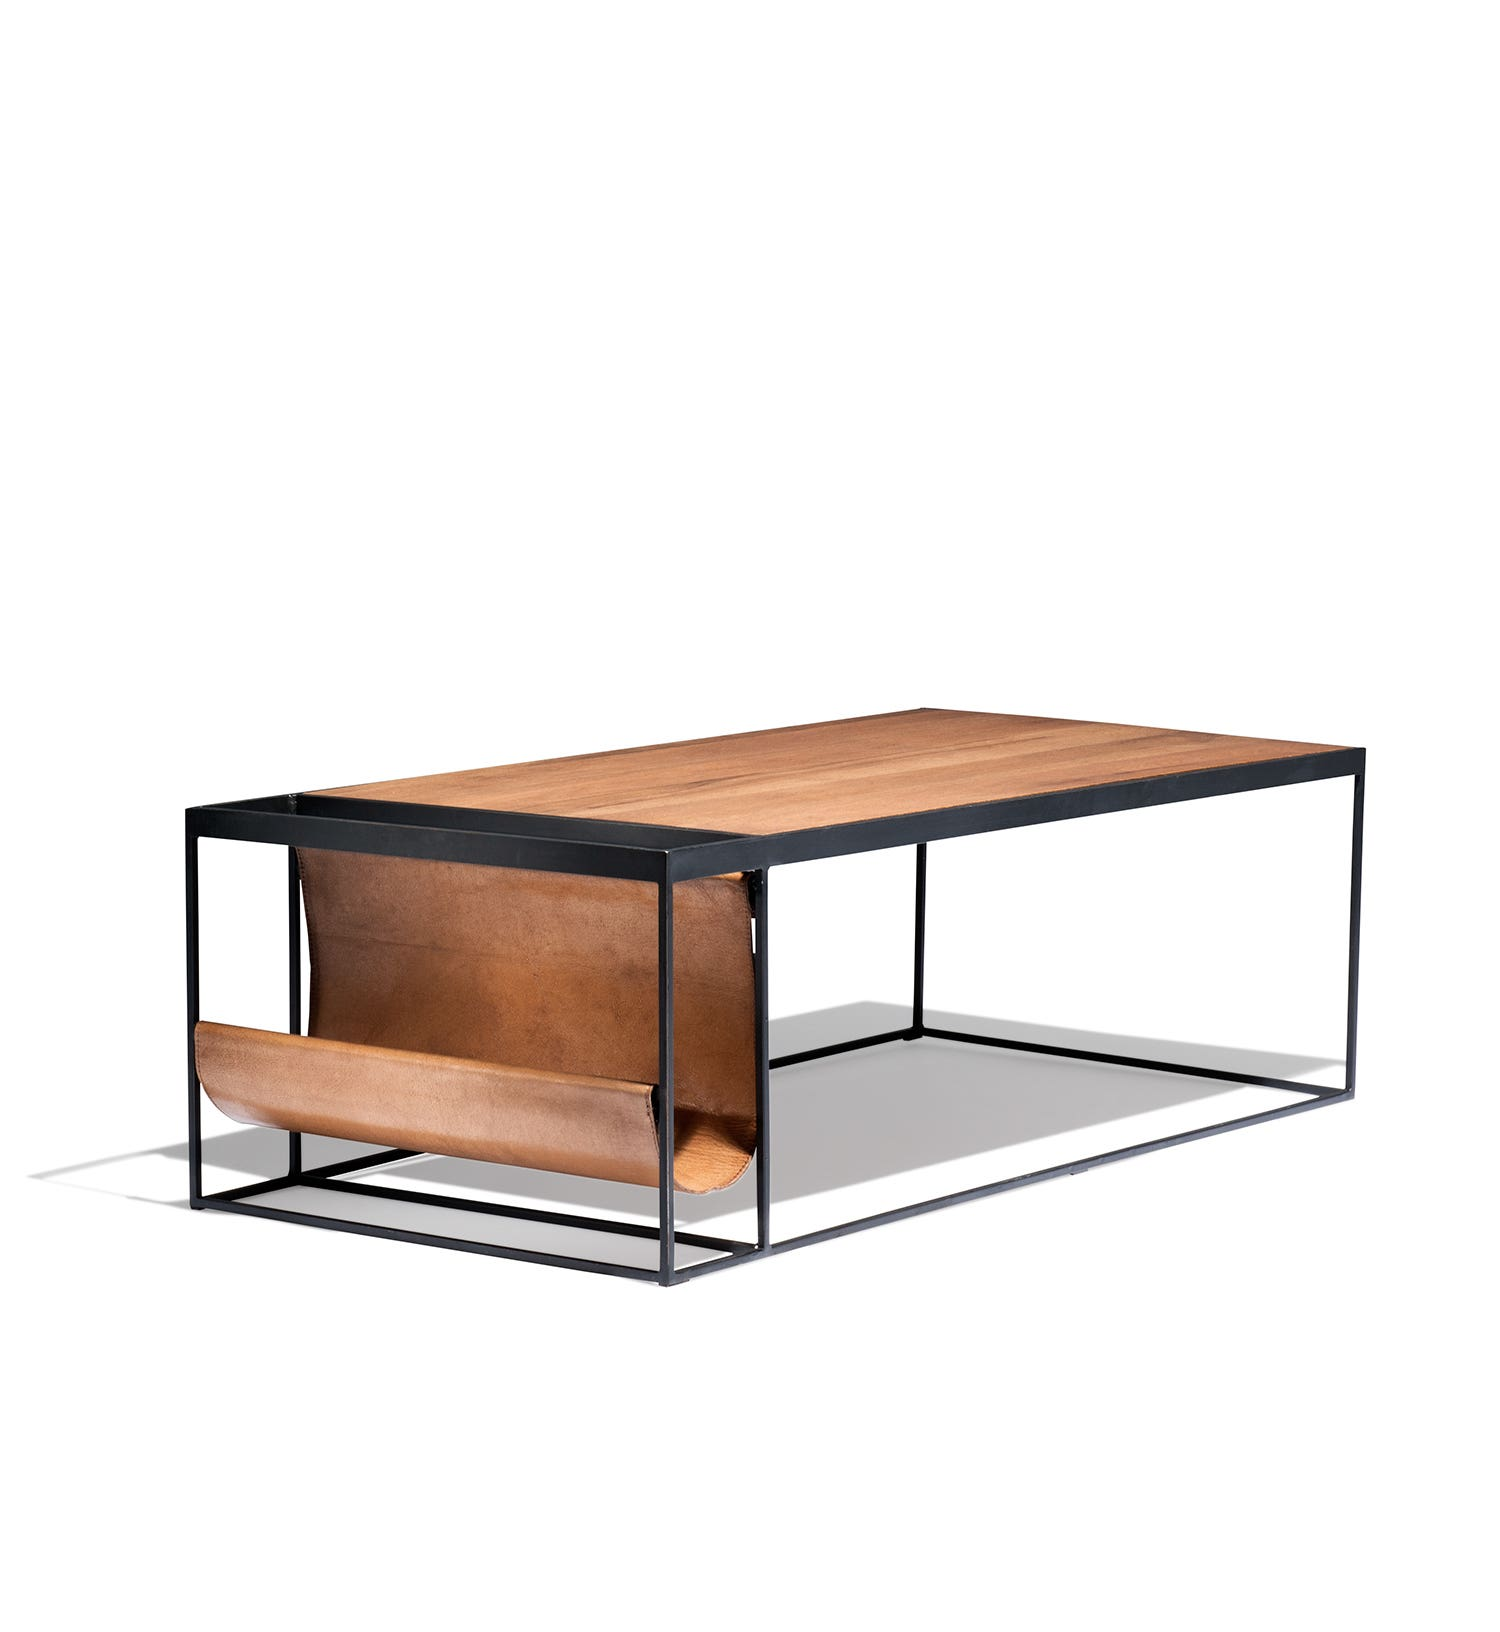 Industrial Modern fice and Wood Tables